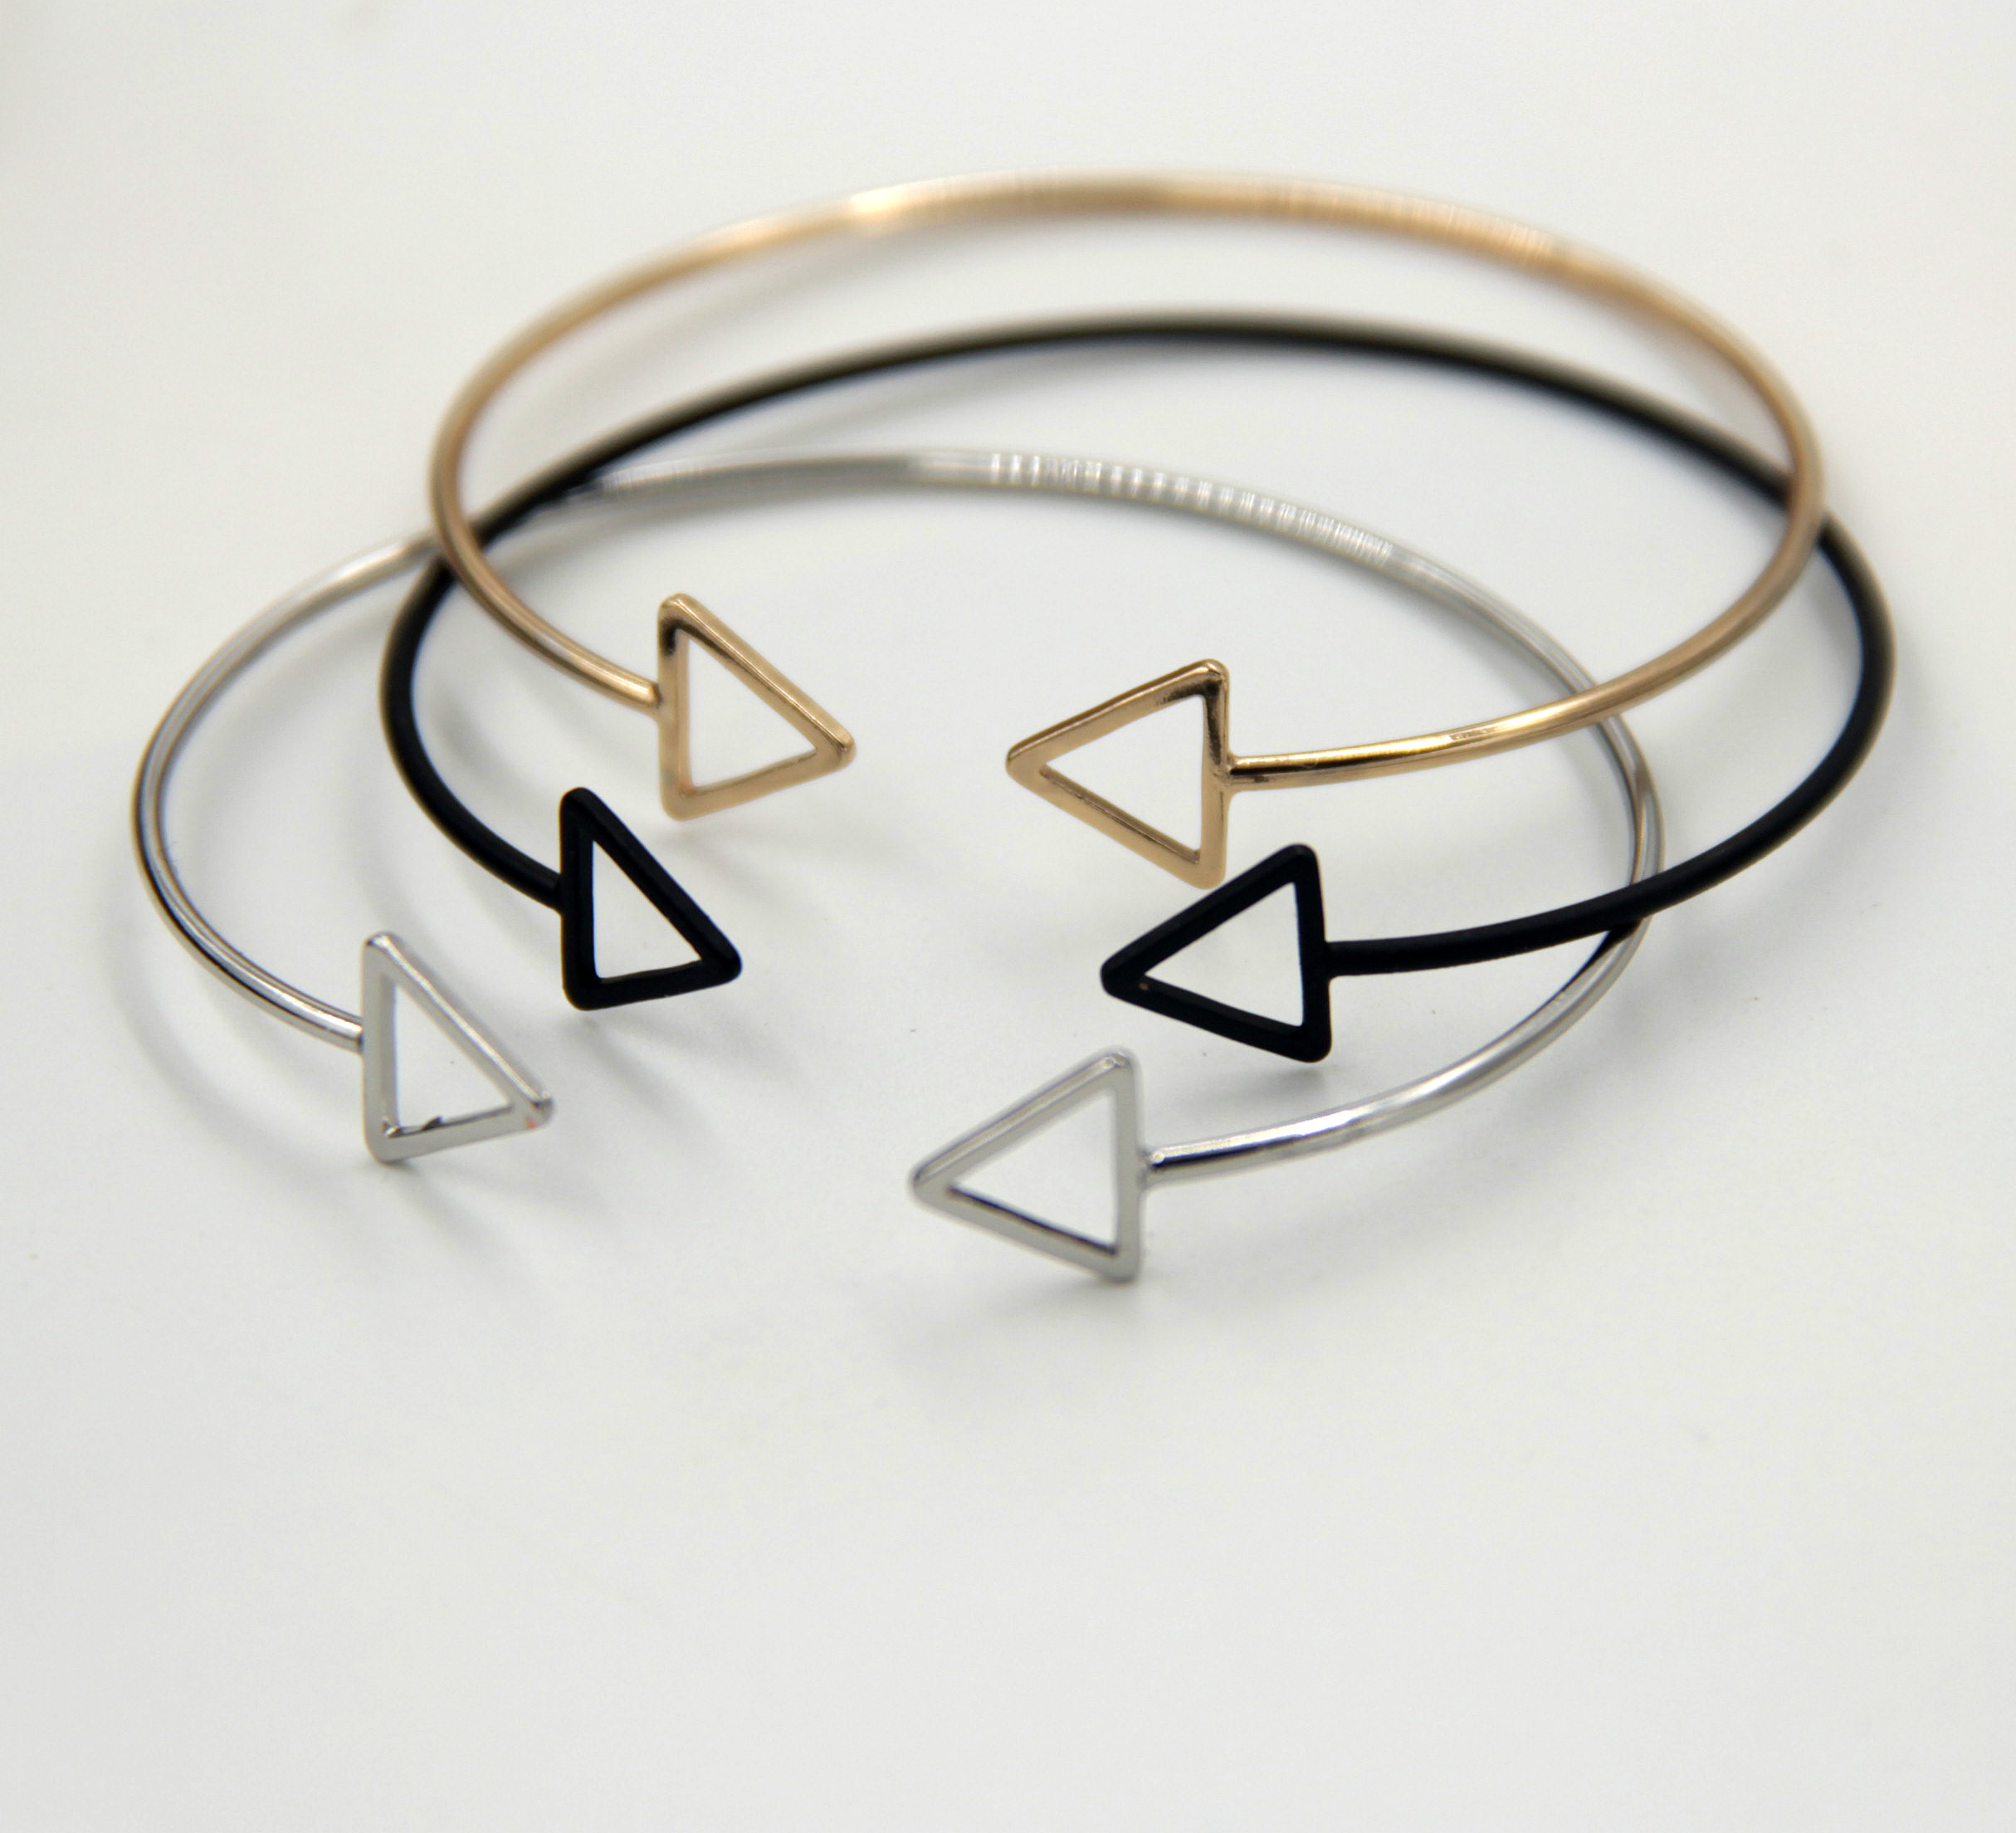 New European and American foreign trade jewelry design copper material simple geometric opening adjustable womens Bracelet